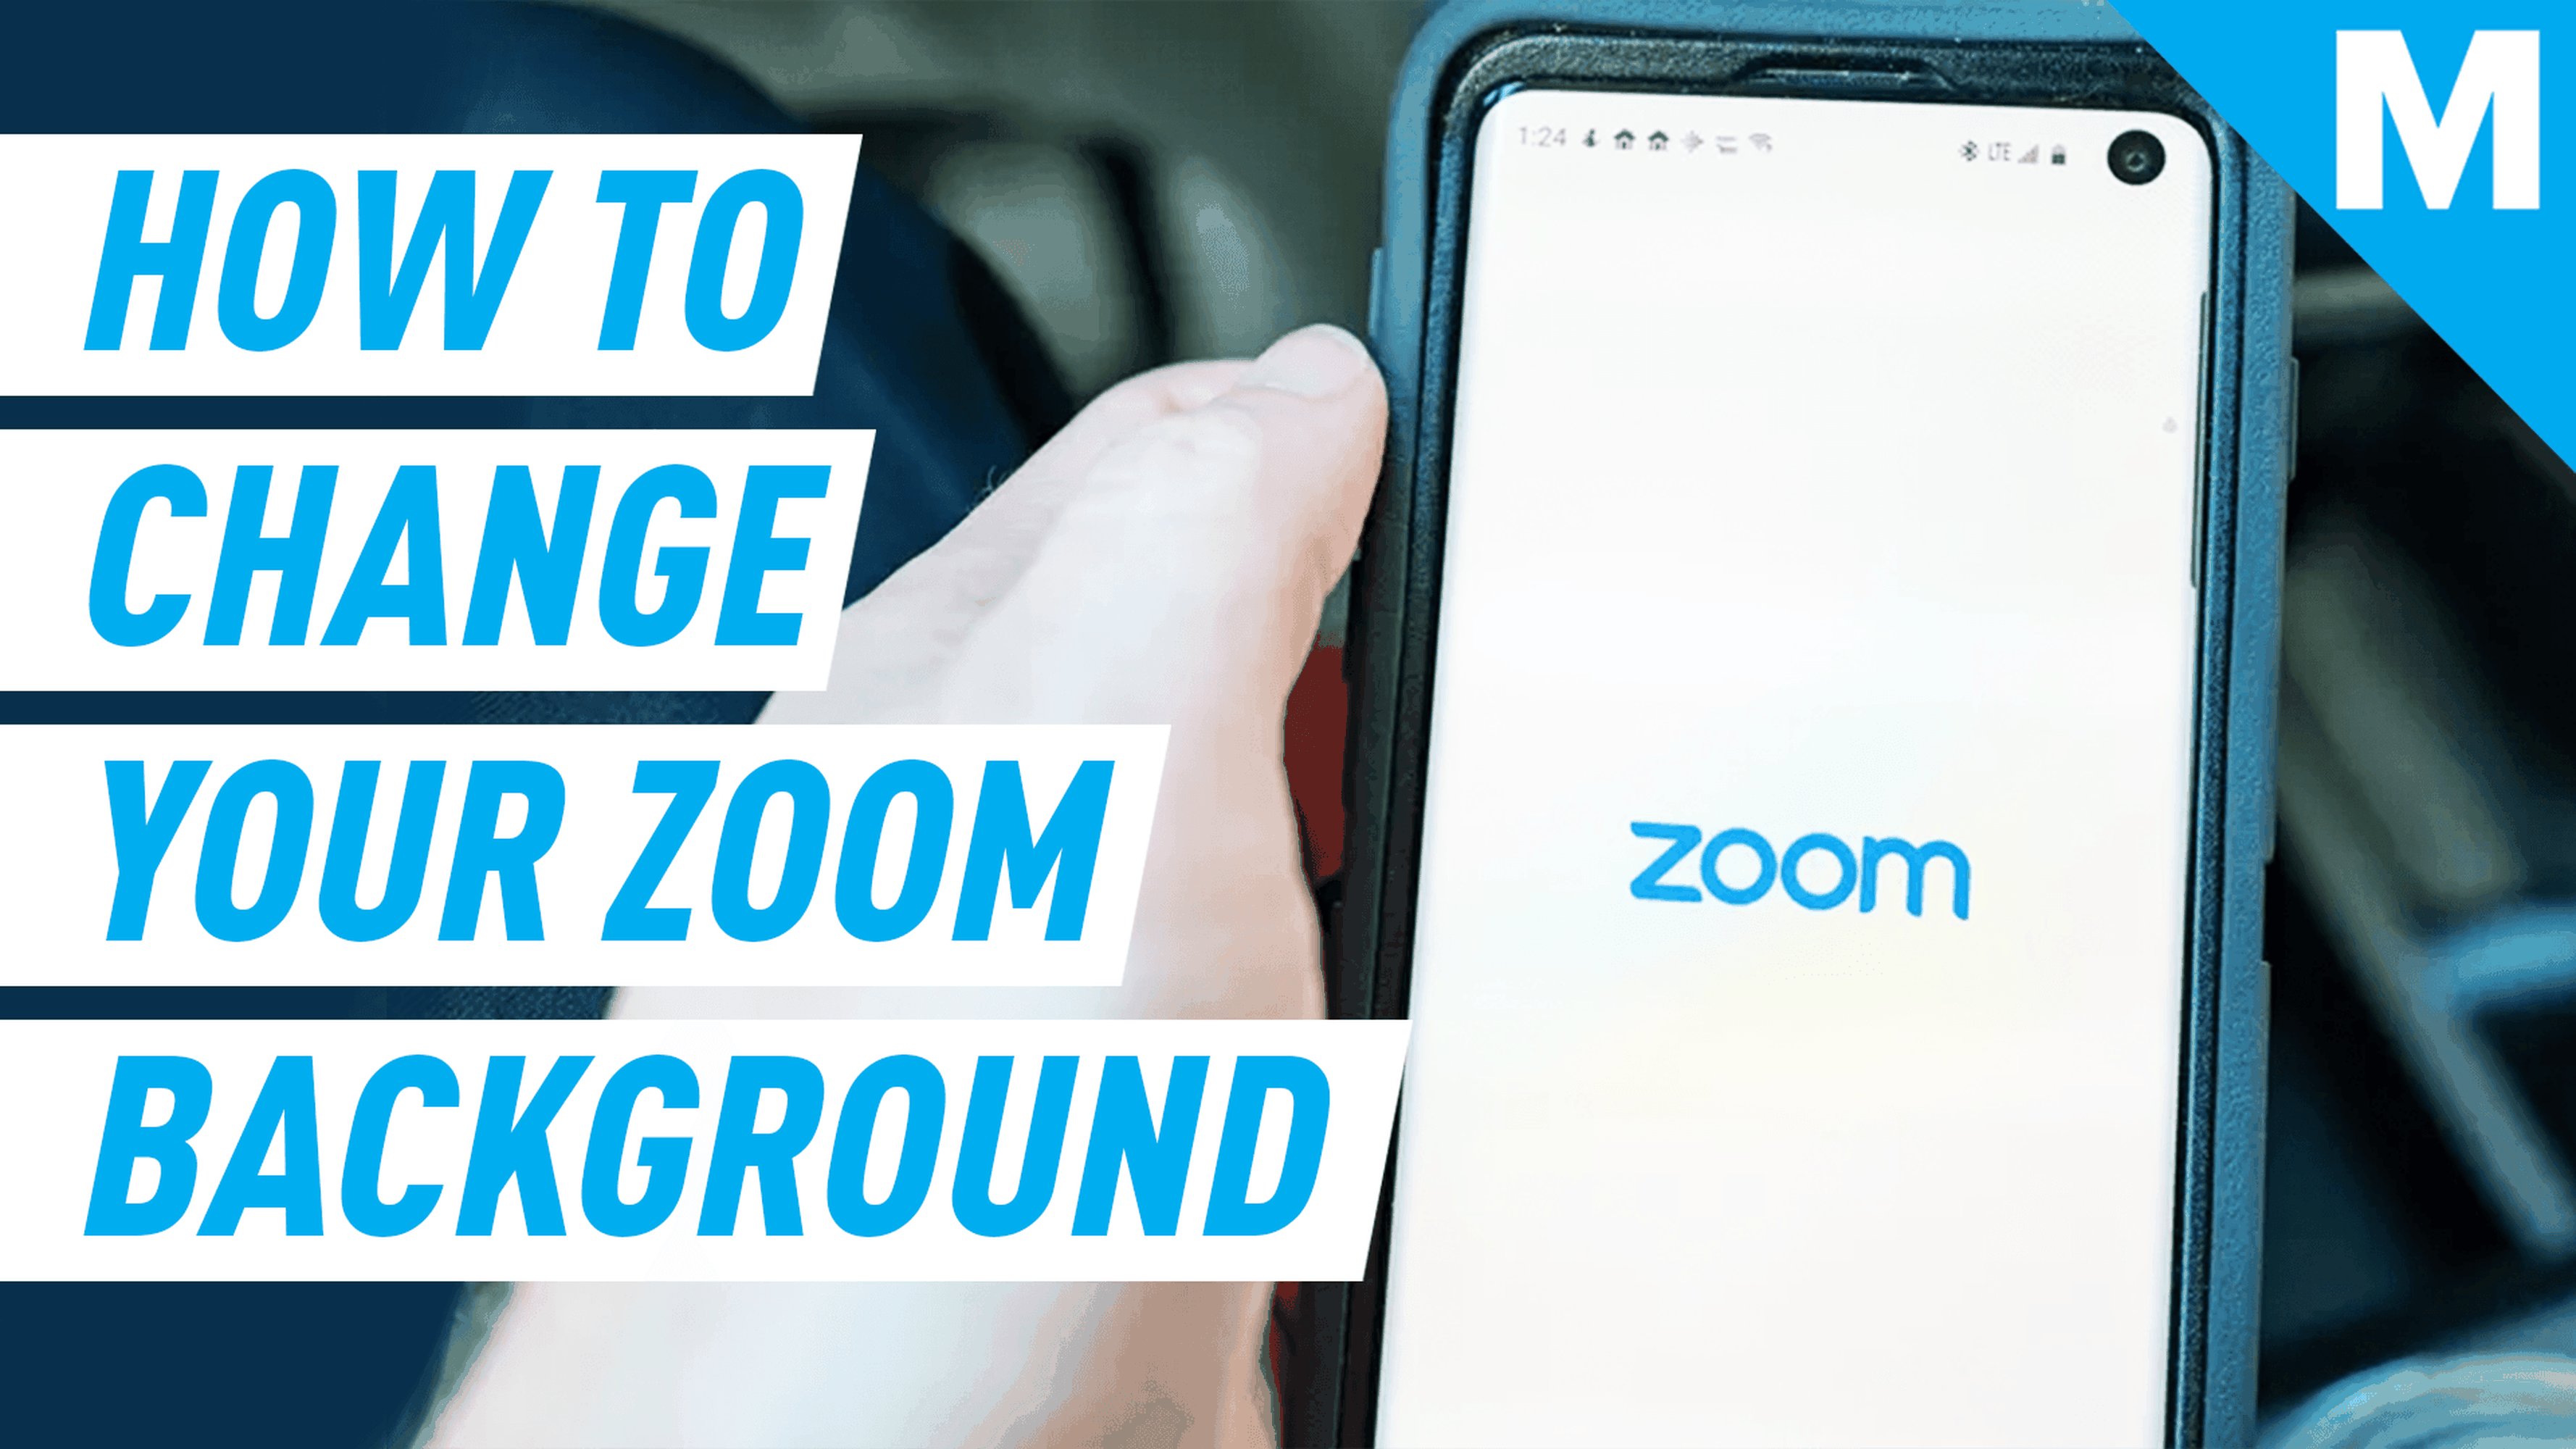 Need To Switch Up Your Zoom Background We Made You 15 Delightful New Options In 2020 Samsung Galaxy Cool Science Experiments Samsung Galaxy Smartphone